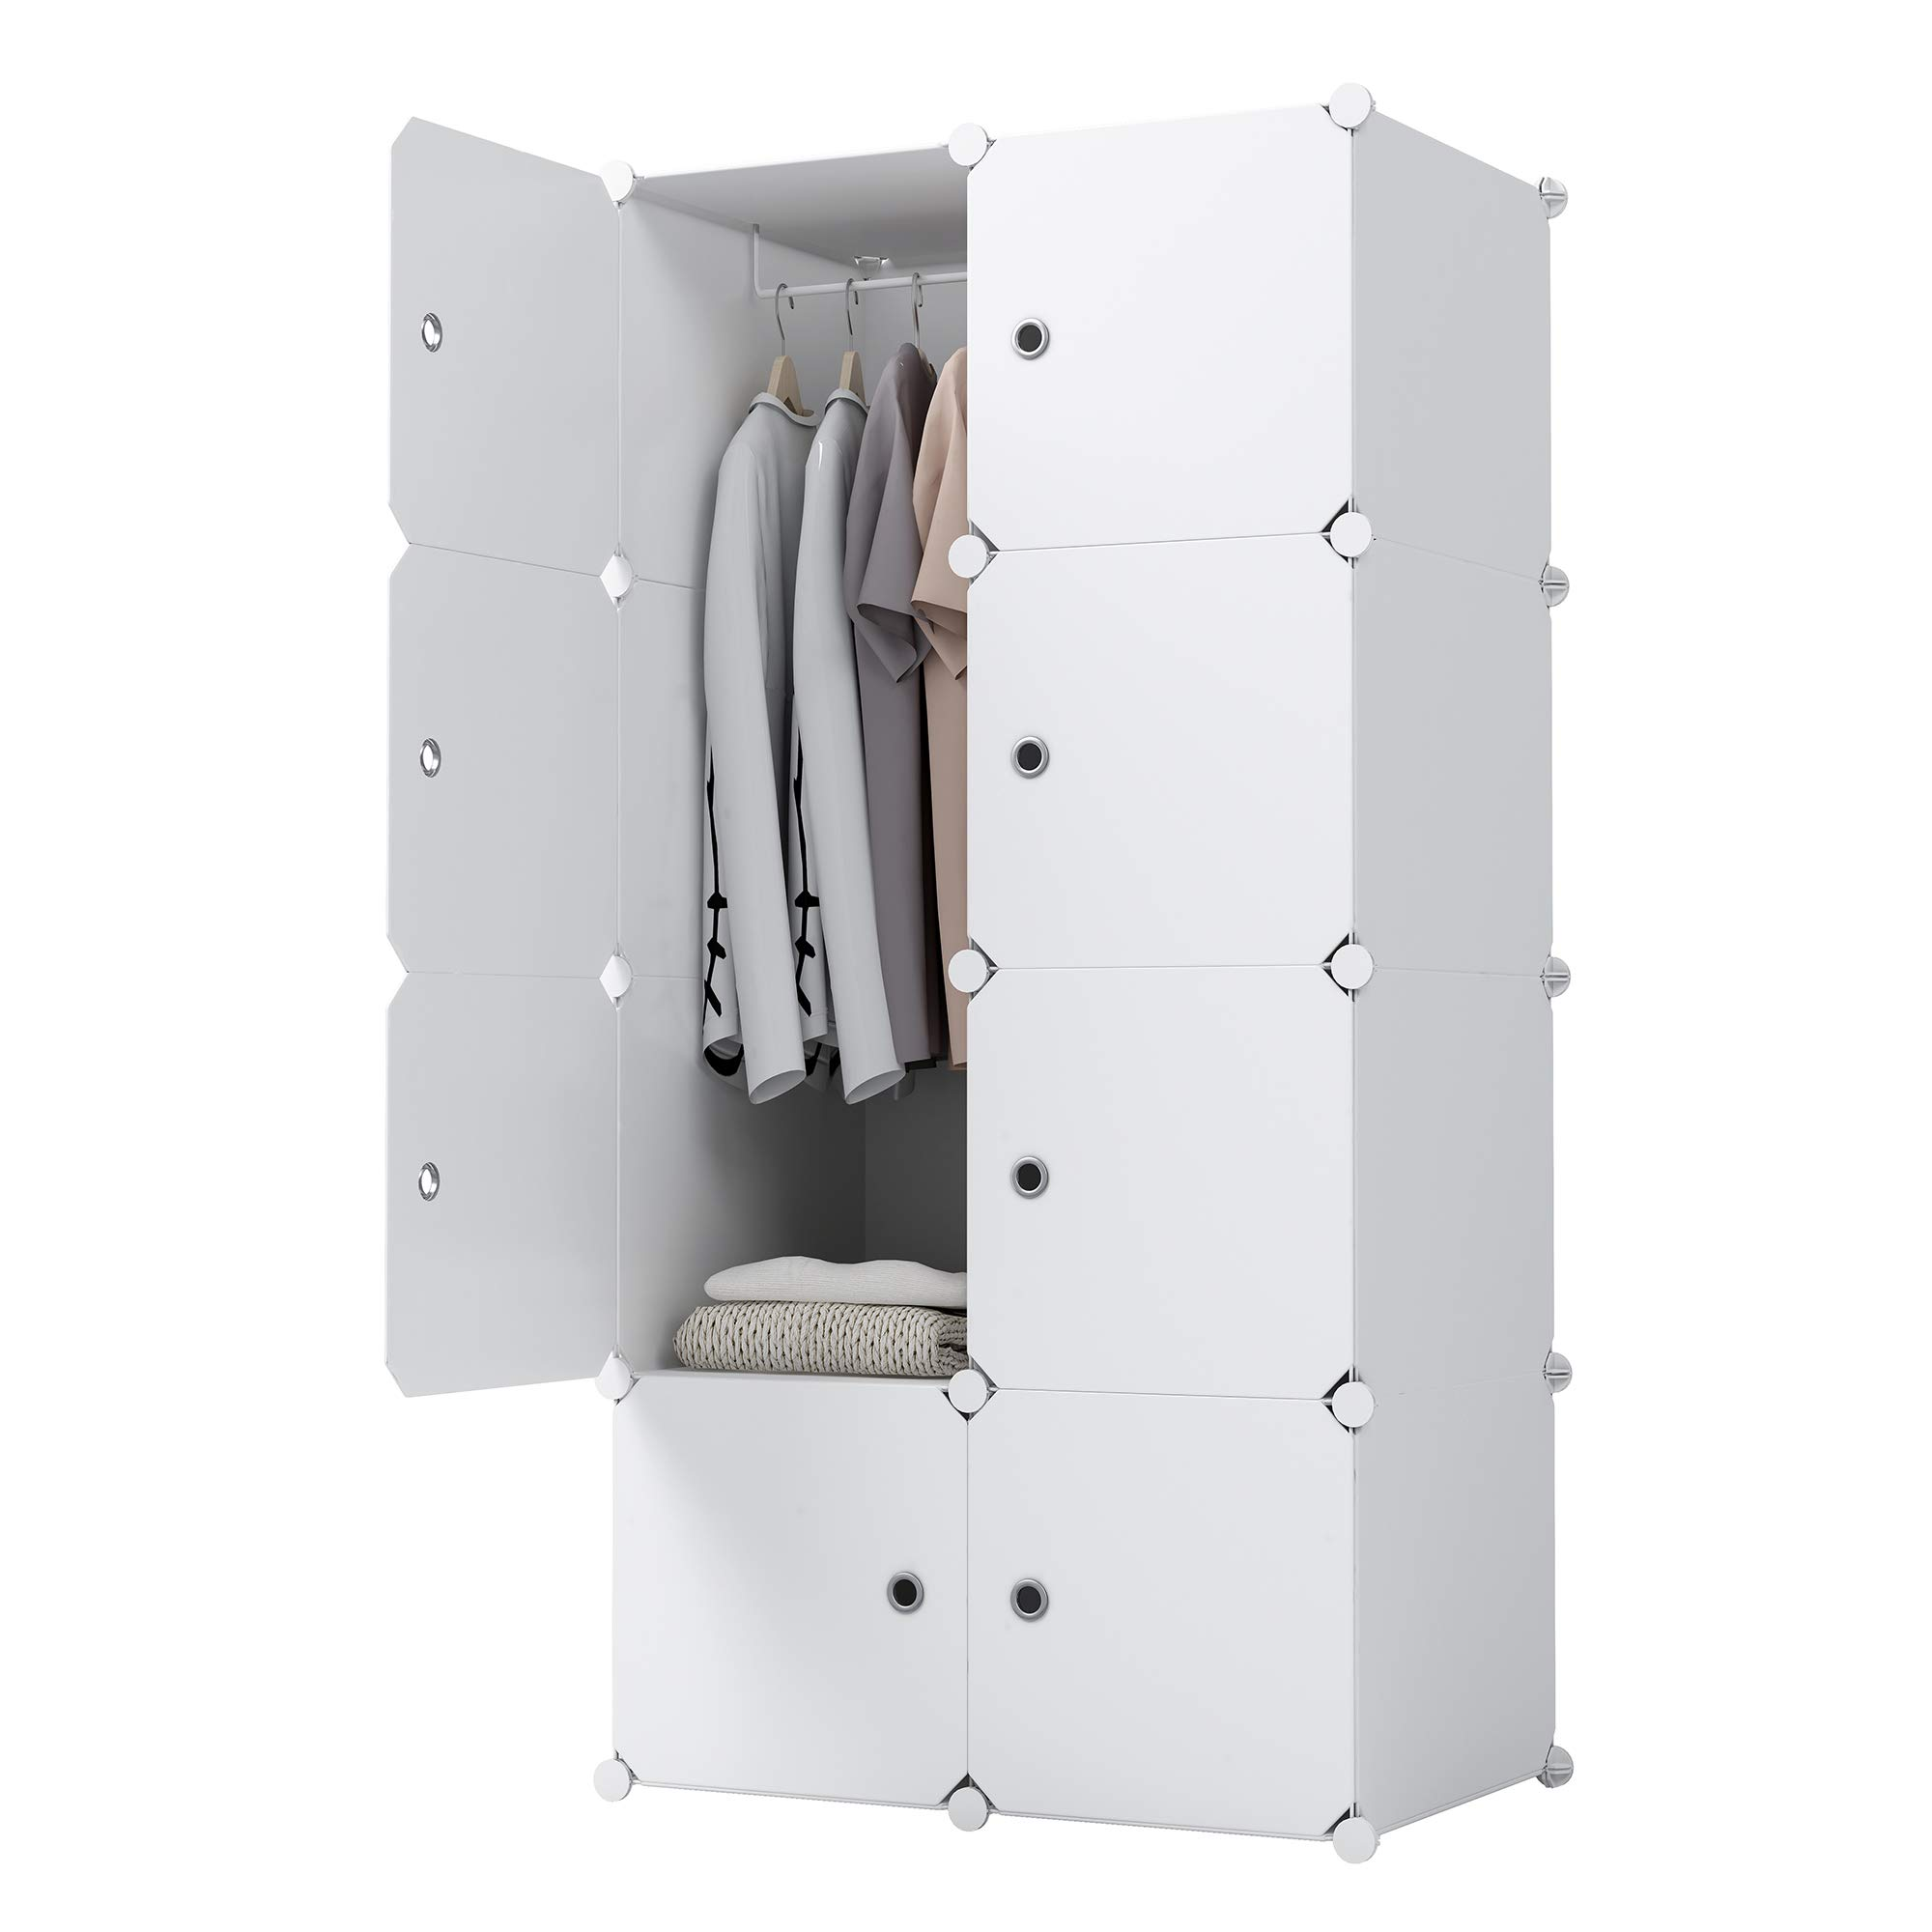 KOUSI Dresser Small Closet Wardrobe Drawer Storage for Clothes Small Wardrobe Storage for Small Spaces Clothes Storage Dresser, Capacious Customizable, White, 5 Cubes 1 Hanging Clothes by KOUSI